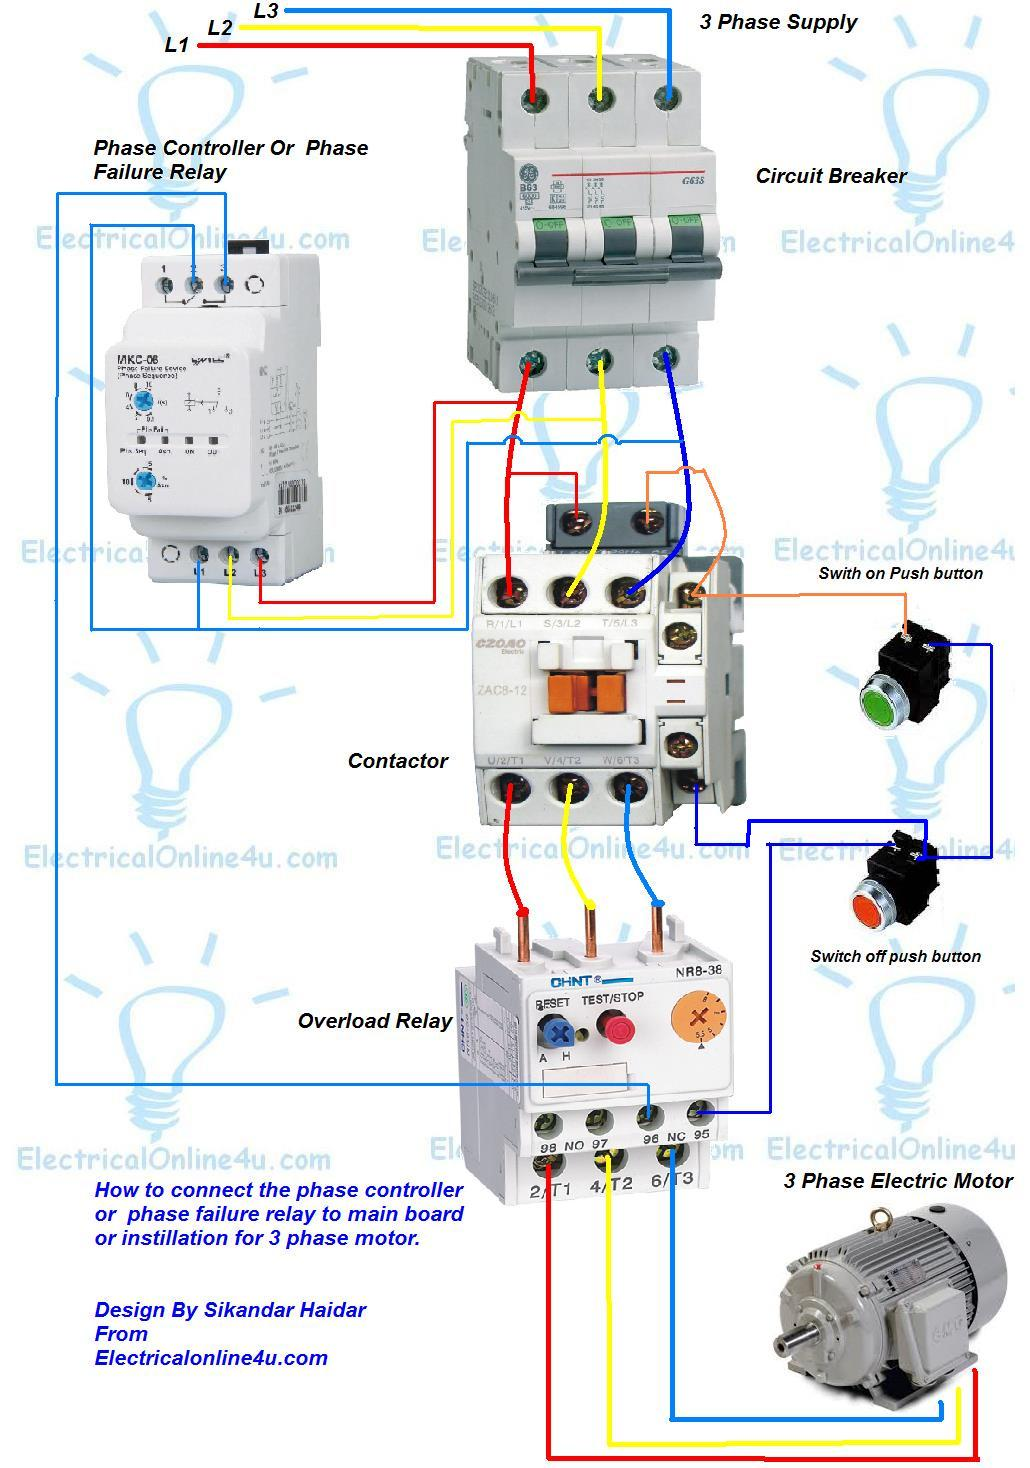 Phase%2Bfailure%2Brelay%2B %2Bphase%2Bcontroller%2Binstilaion%2Bin%2B3%2Bphase%2BMain%2Bboard%2Bor%2Bfor%2B3%2Bphase%2Bmotor phase controller wiring phase failure relay diagram electrical wiring diagram for contactor at gsmportal.co